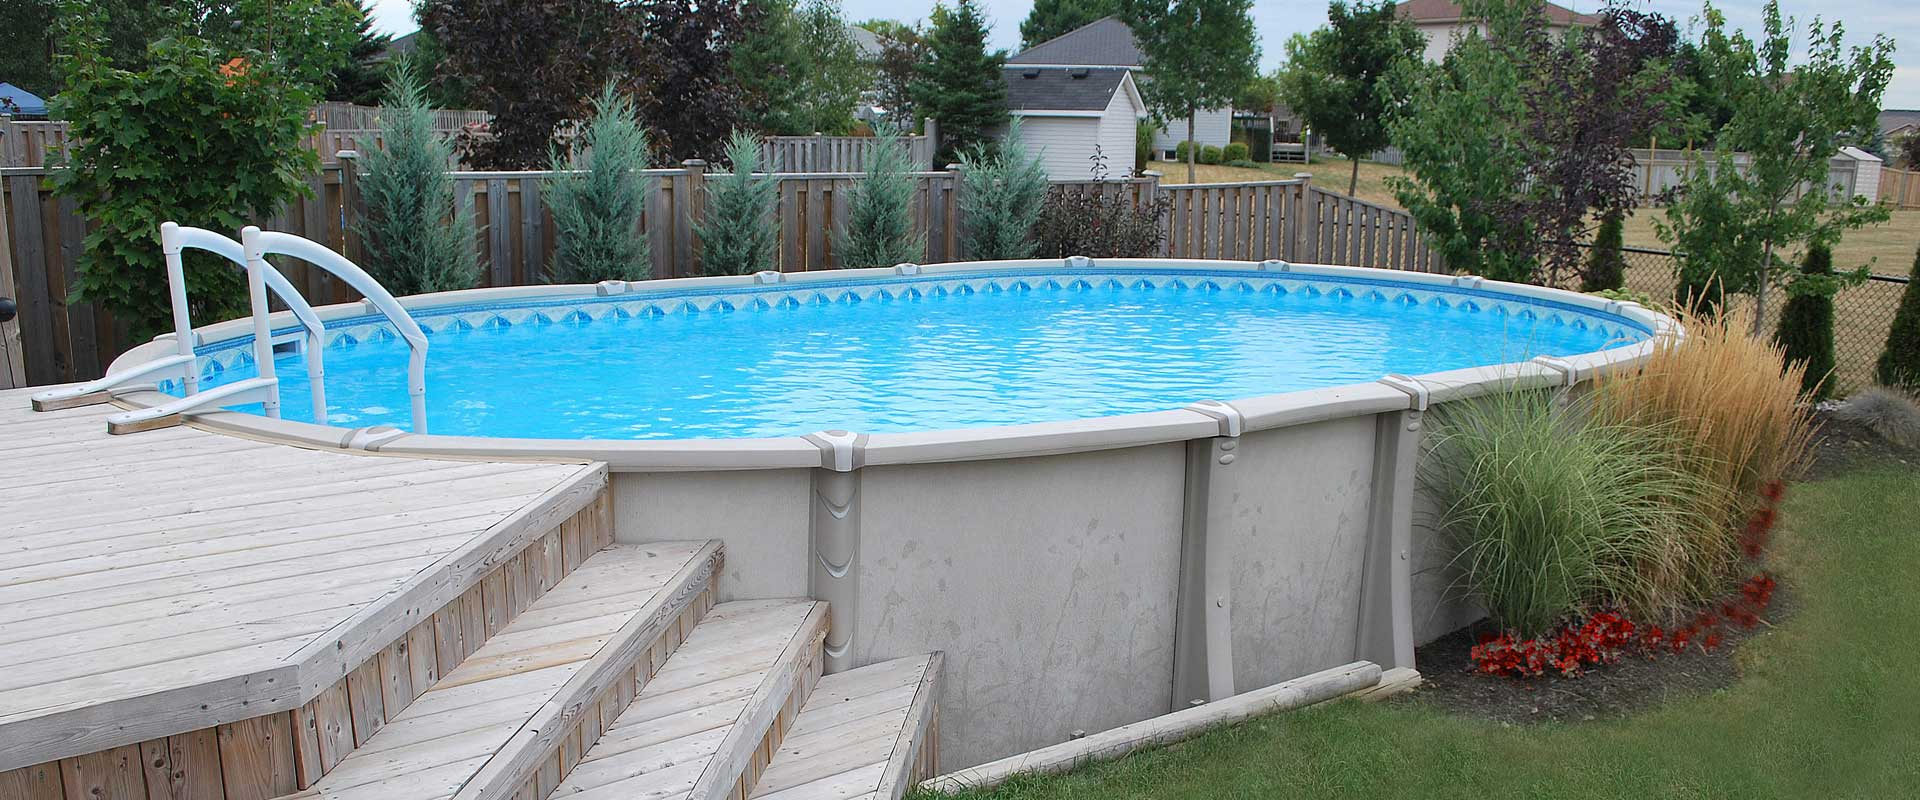 Above Ground Pools  Resin  Steel  Pioneer Family Pools